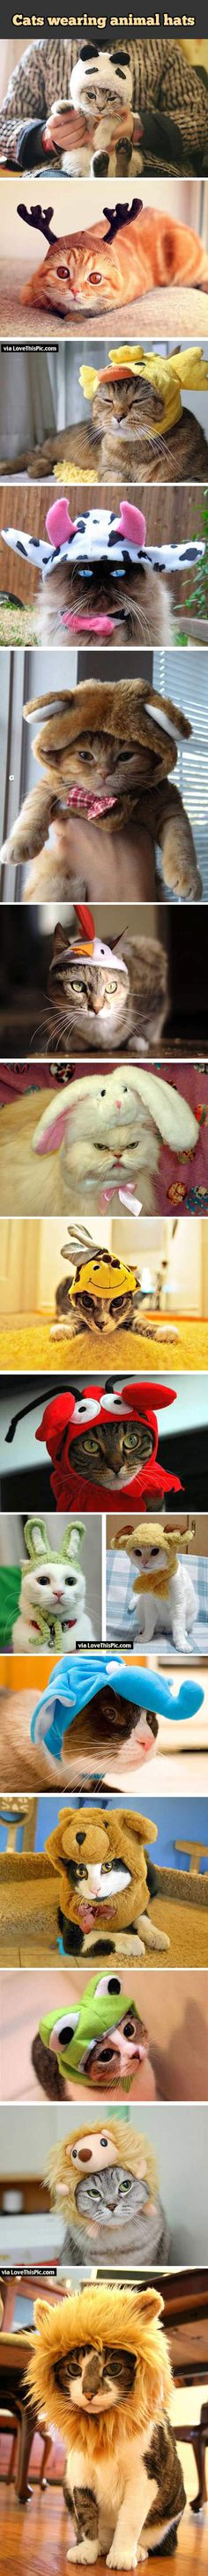 Cats Wearing Animal Hats cute animals cat cats adorable animal kittens pets kitten funny pictures funny animals funny cats cat clothes